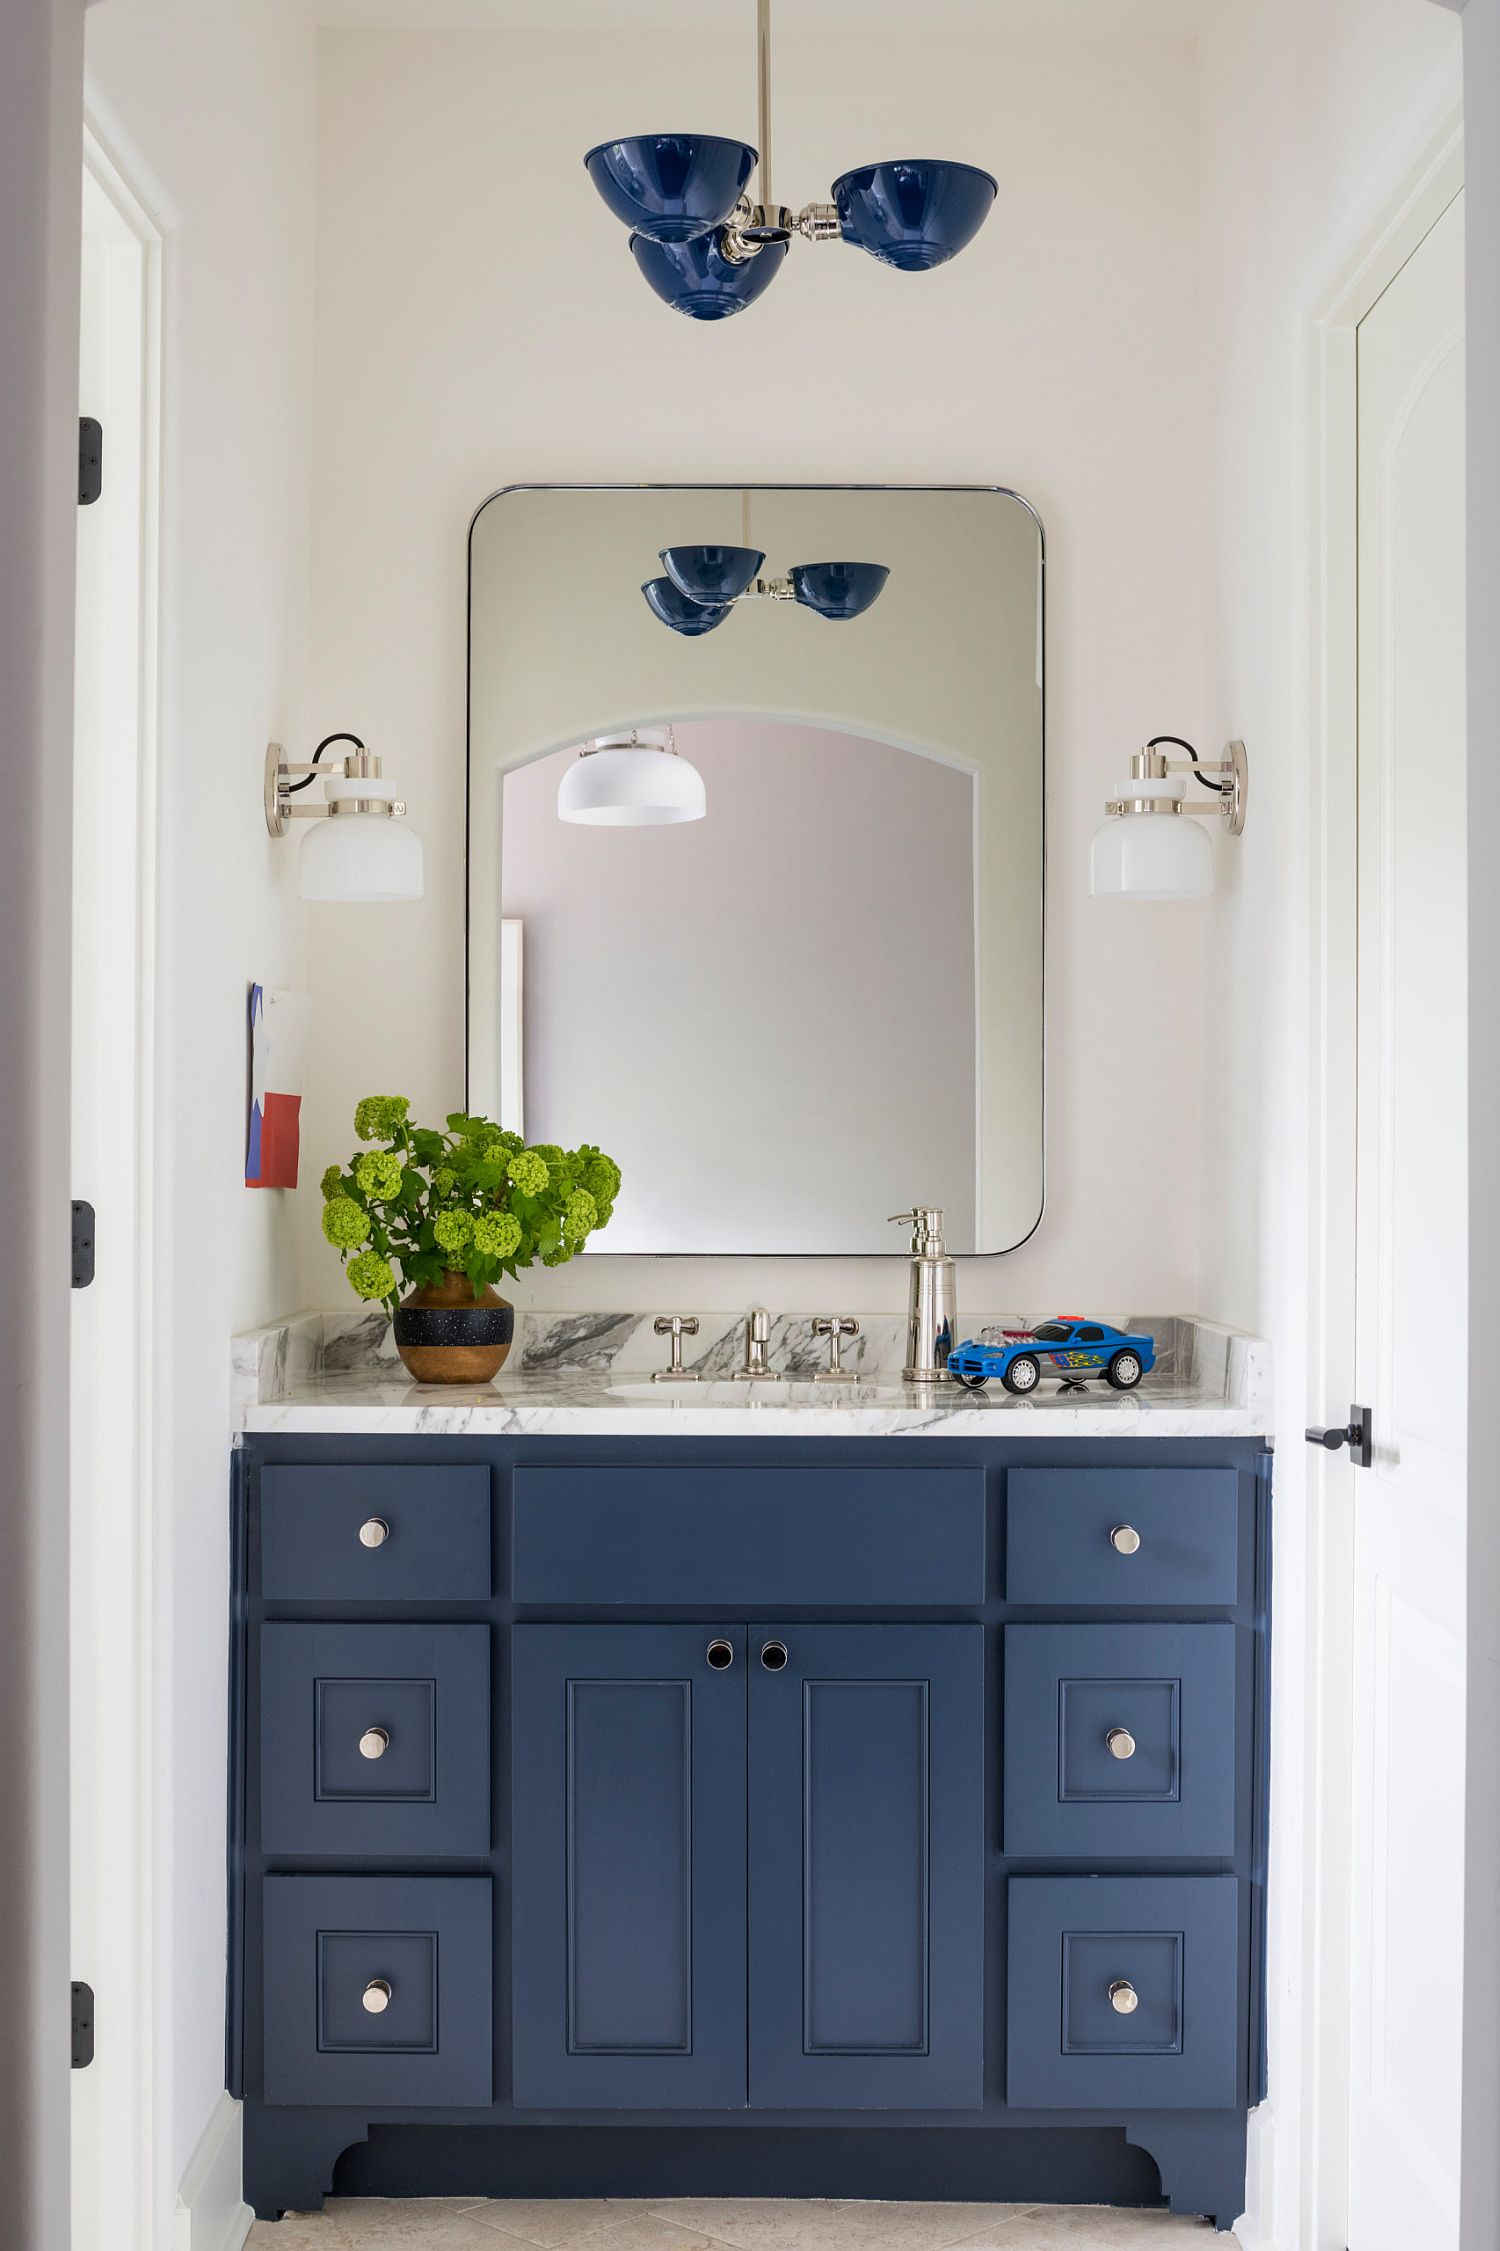 Adding a blue vanity to the white bathroom can instantly transform the ambiance inside the space